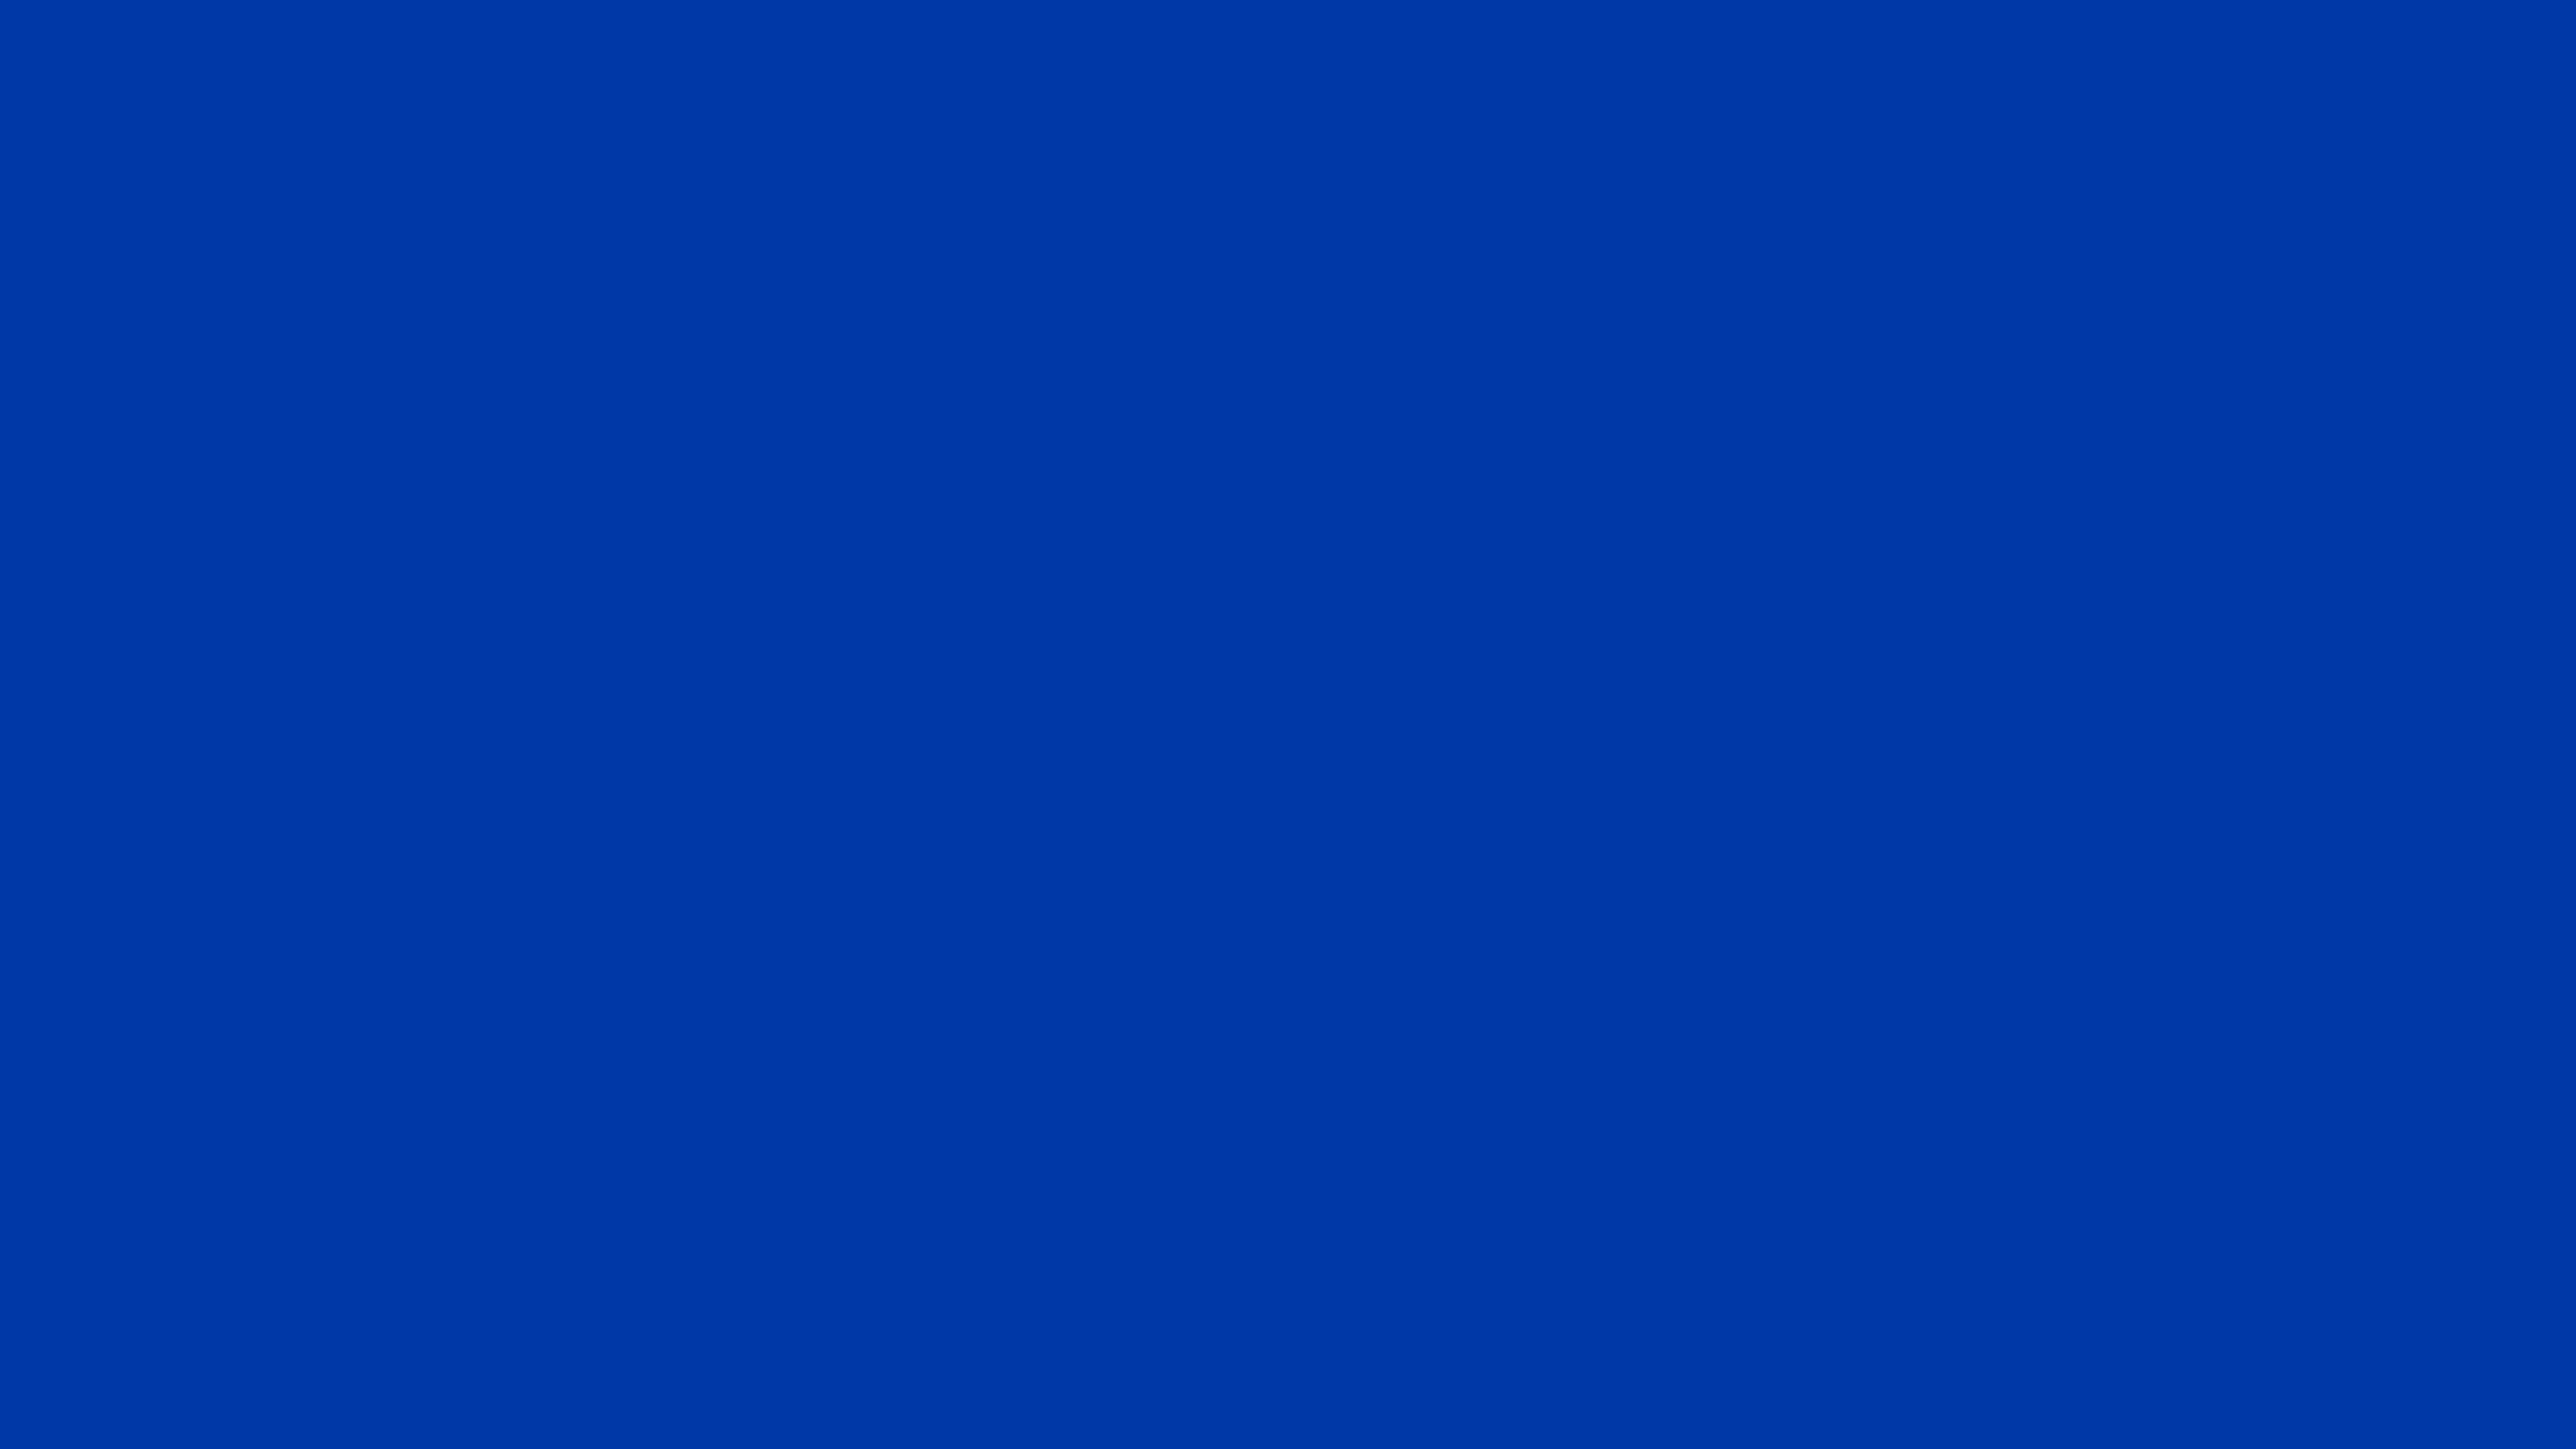 3840x2160 Royal Azure Solid Color Background